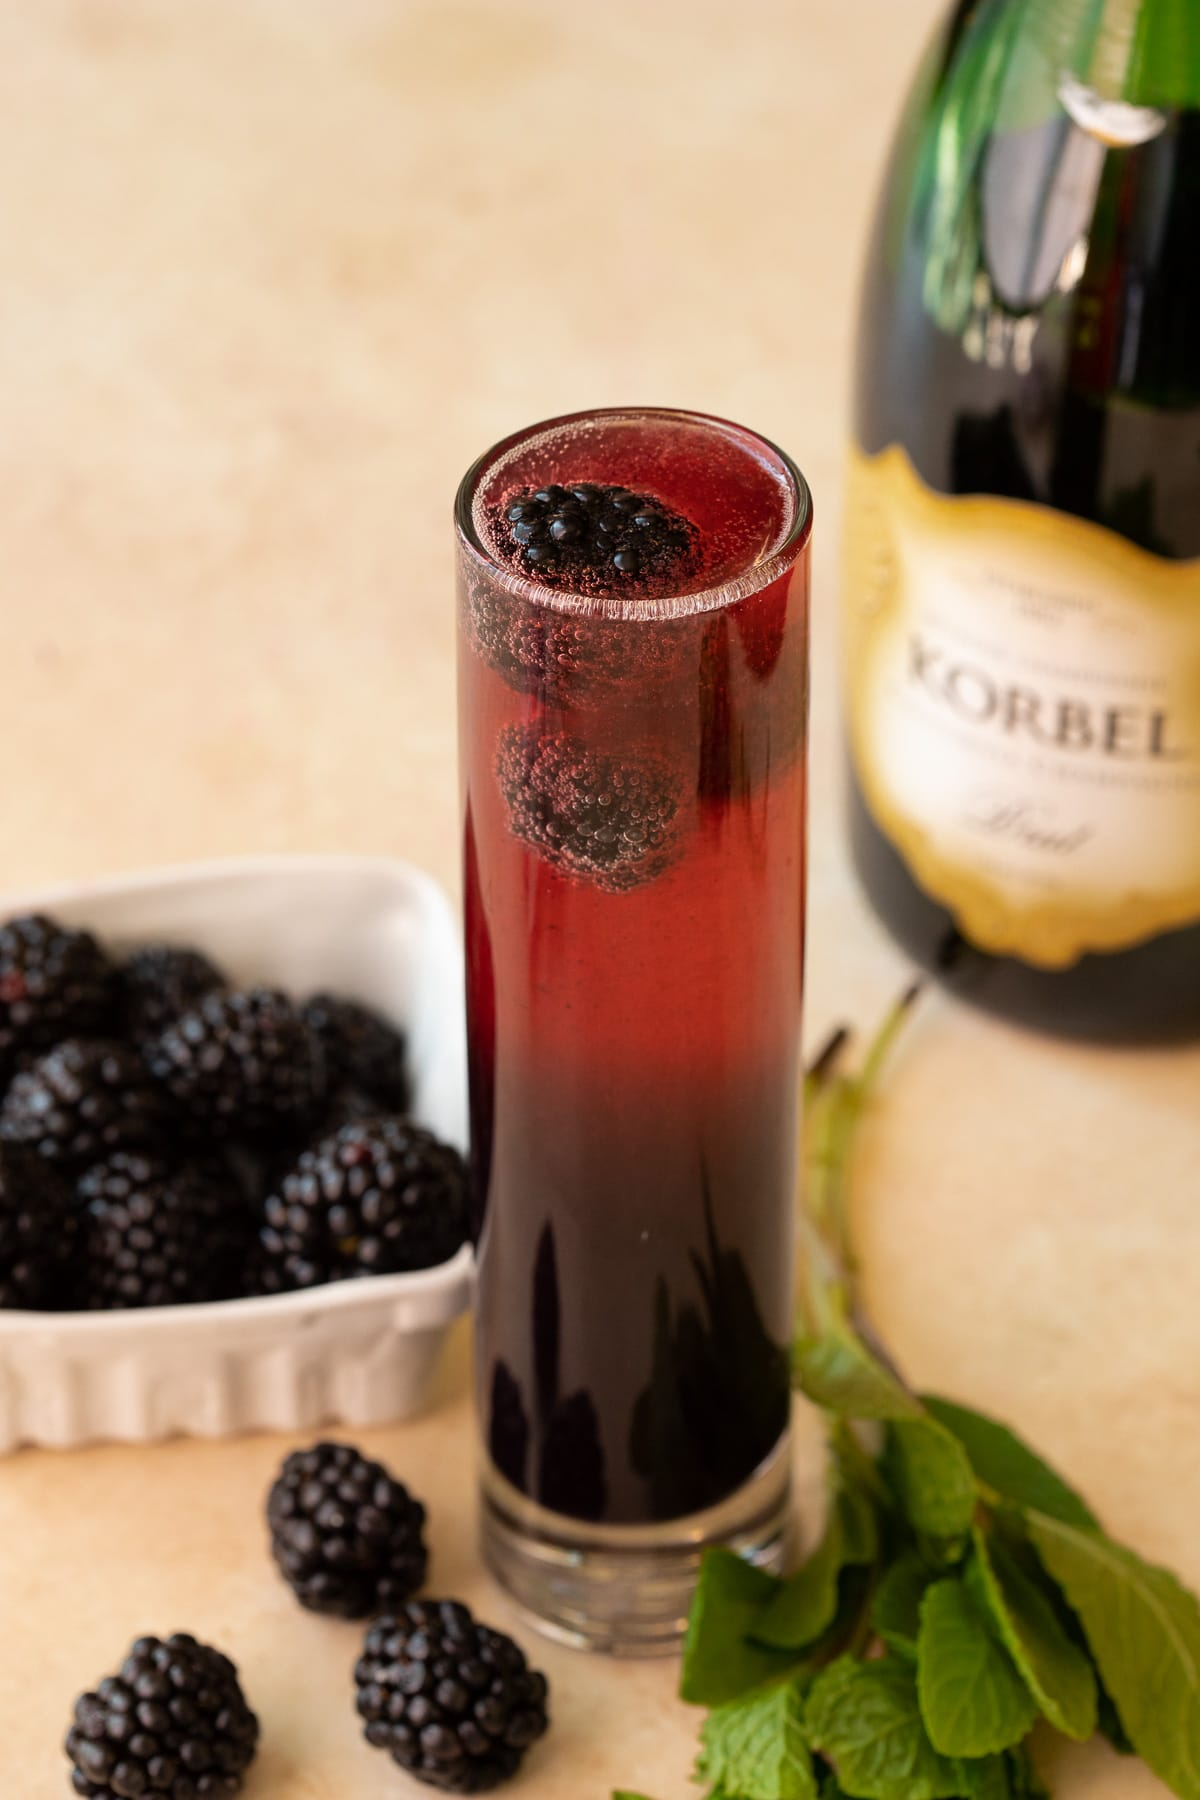 Mimosa with fresh blackberries and mint garnish.